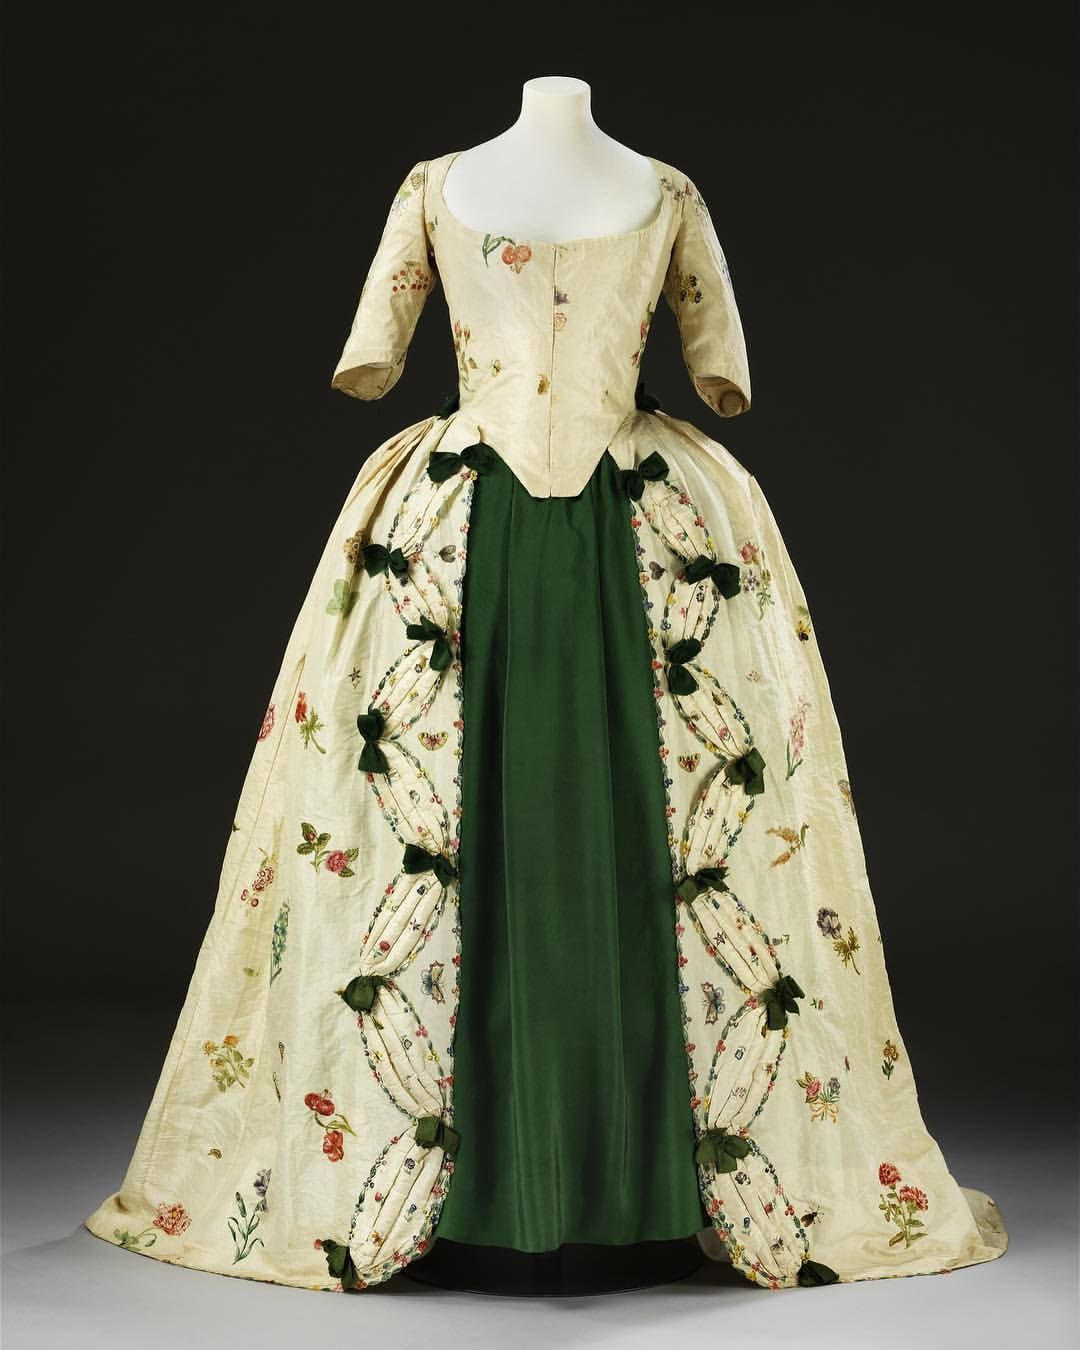 Historical dresses image by Meghan White on Time Travel